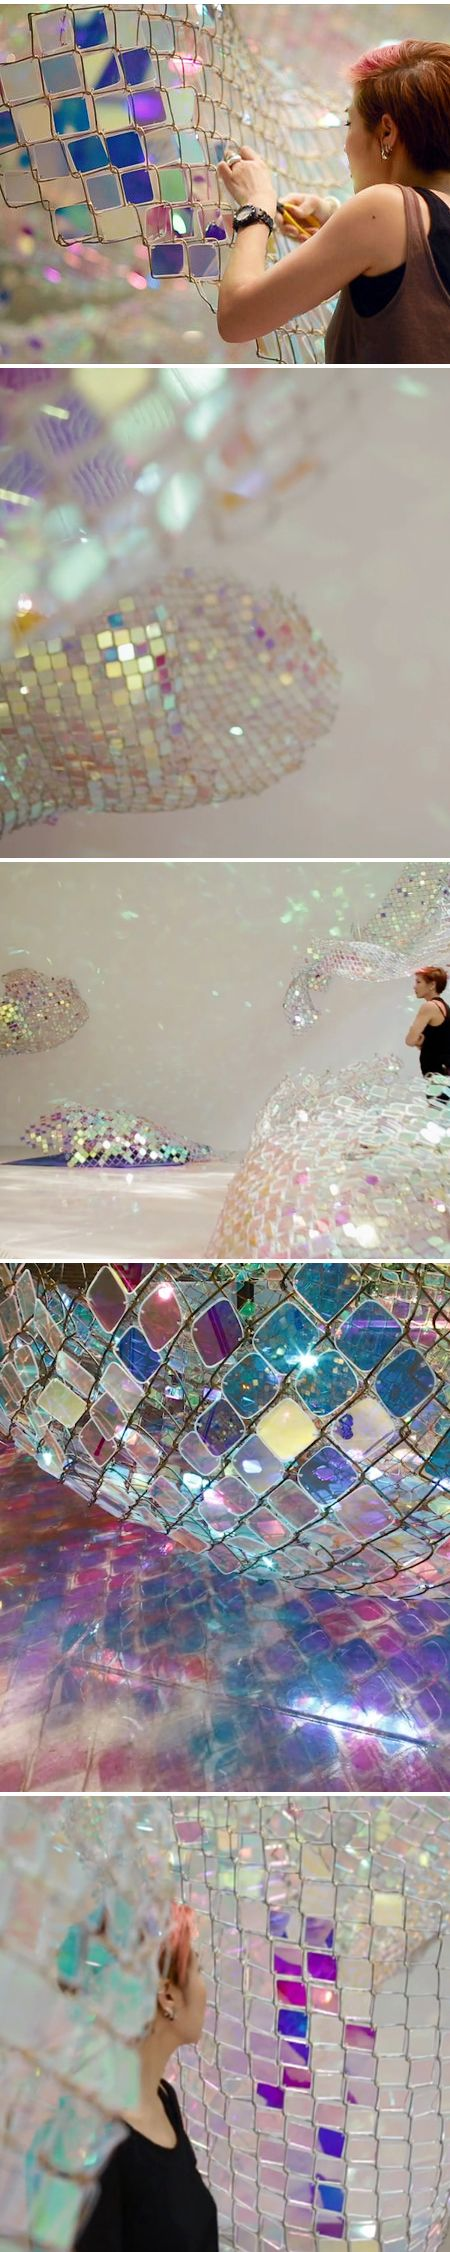 "soo sunny park - installation of ""unwoven light"" 2013"